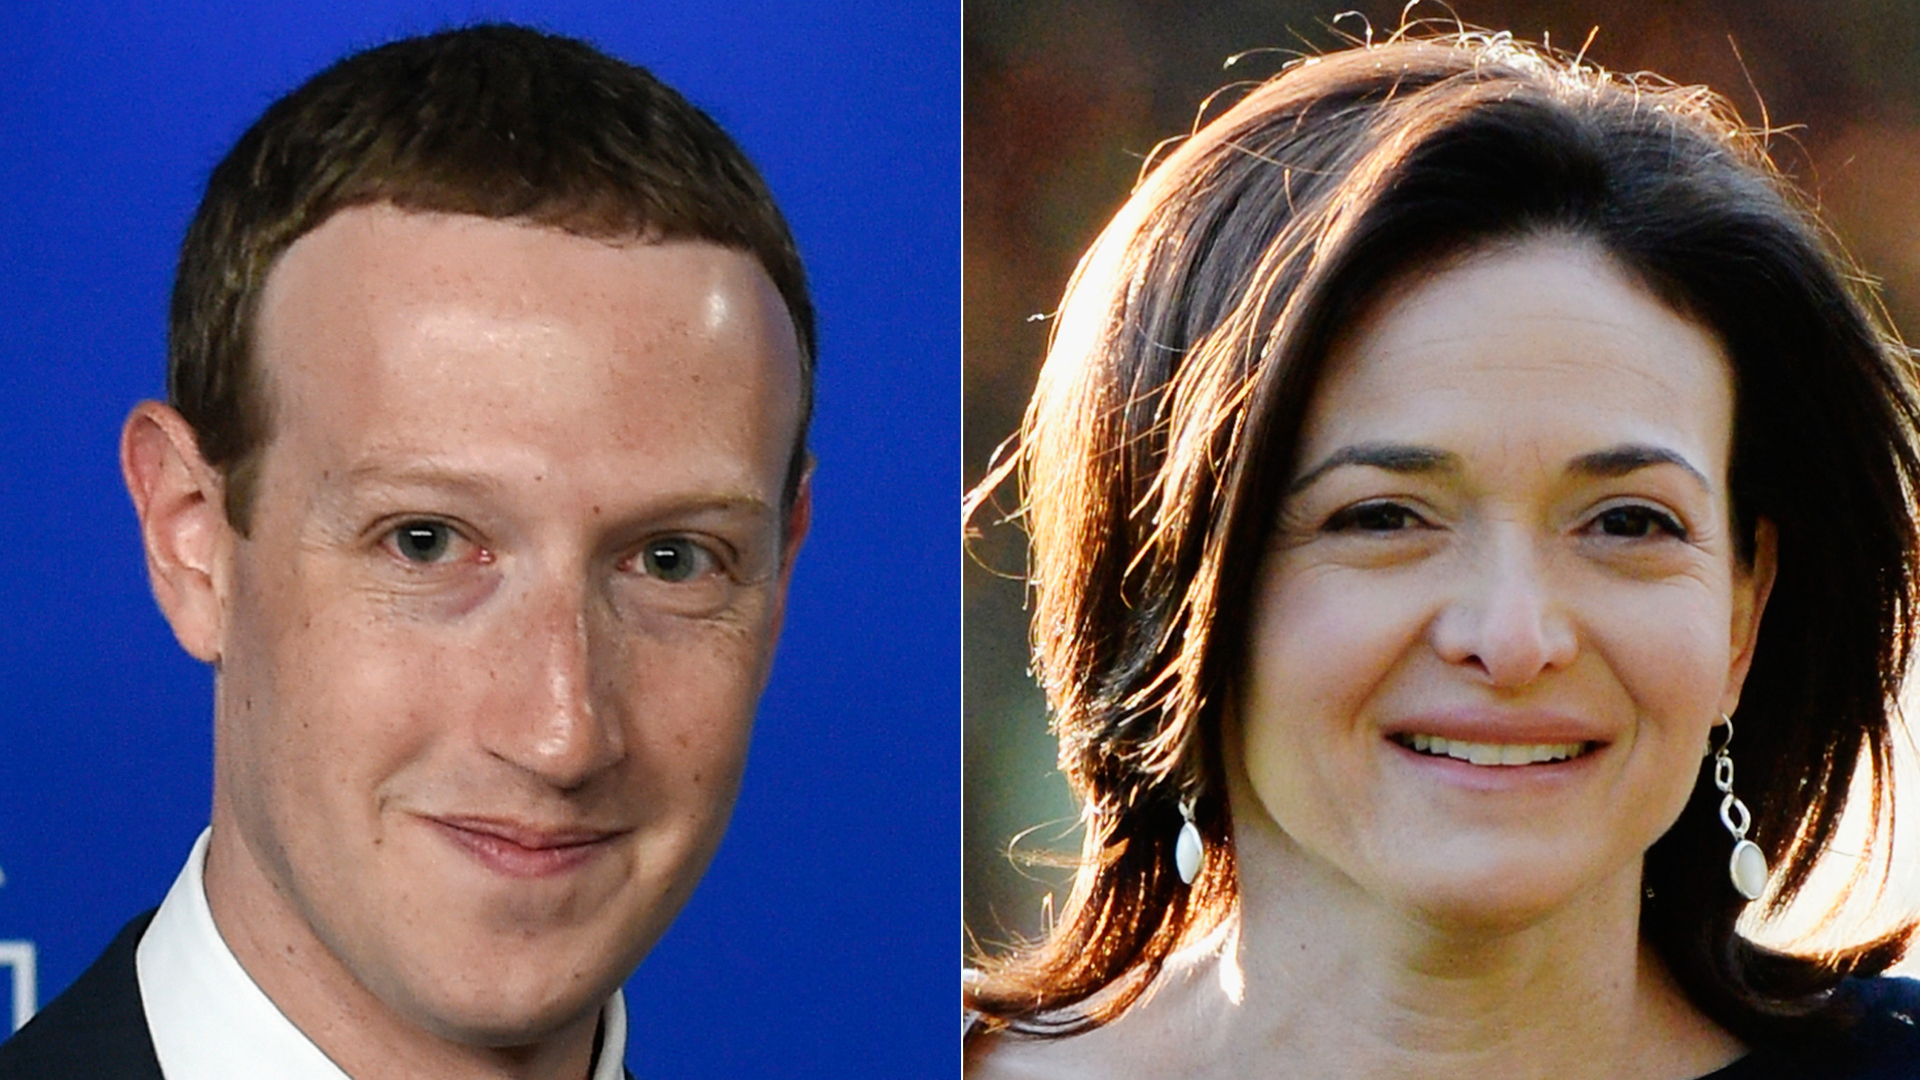 On left, Facebook CEO Mark Zuckerberg arrives at the European Parliament on May 22, 2018. (Credit: JOHN THYS/AFP/Getty Images) On right, Sheryl Sandberg, COO of Facebook, arrives for morning session of the Allen & Co. annual conference at the Sun Valley Resort on July 10, 2013 in Sun Valley, Idaho. (Credit: Kevork Djansezian/Getty Images)